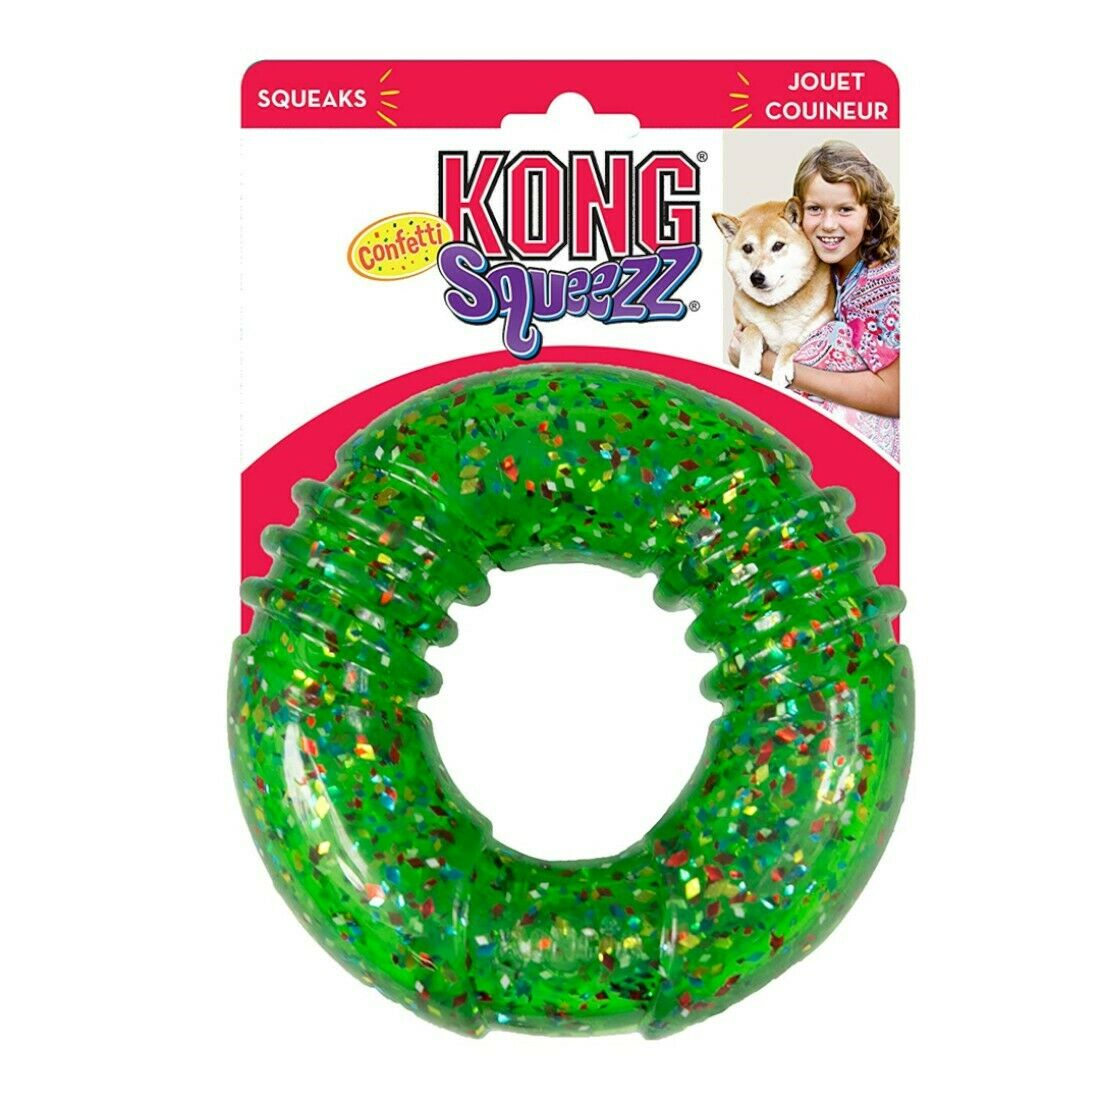 KONG Squeezz Confetti Ring Dog Toy, Large